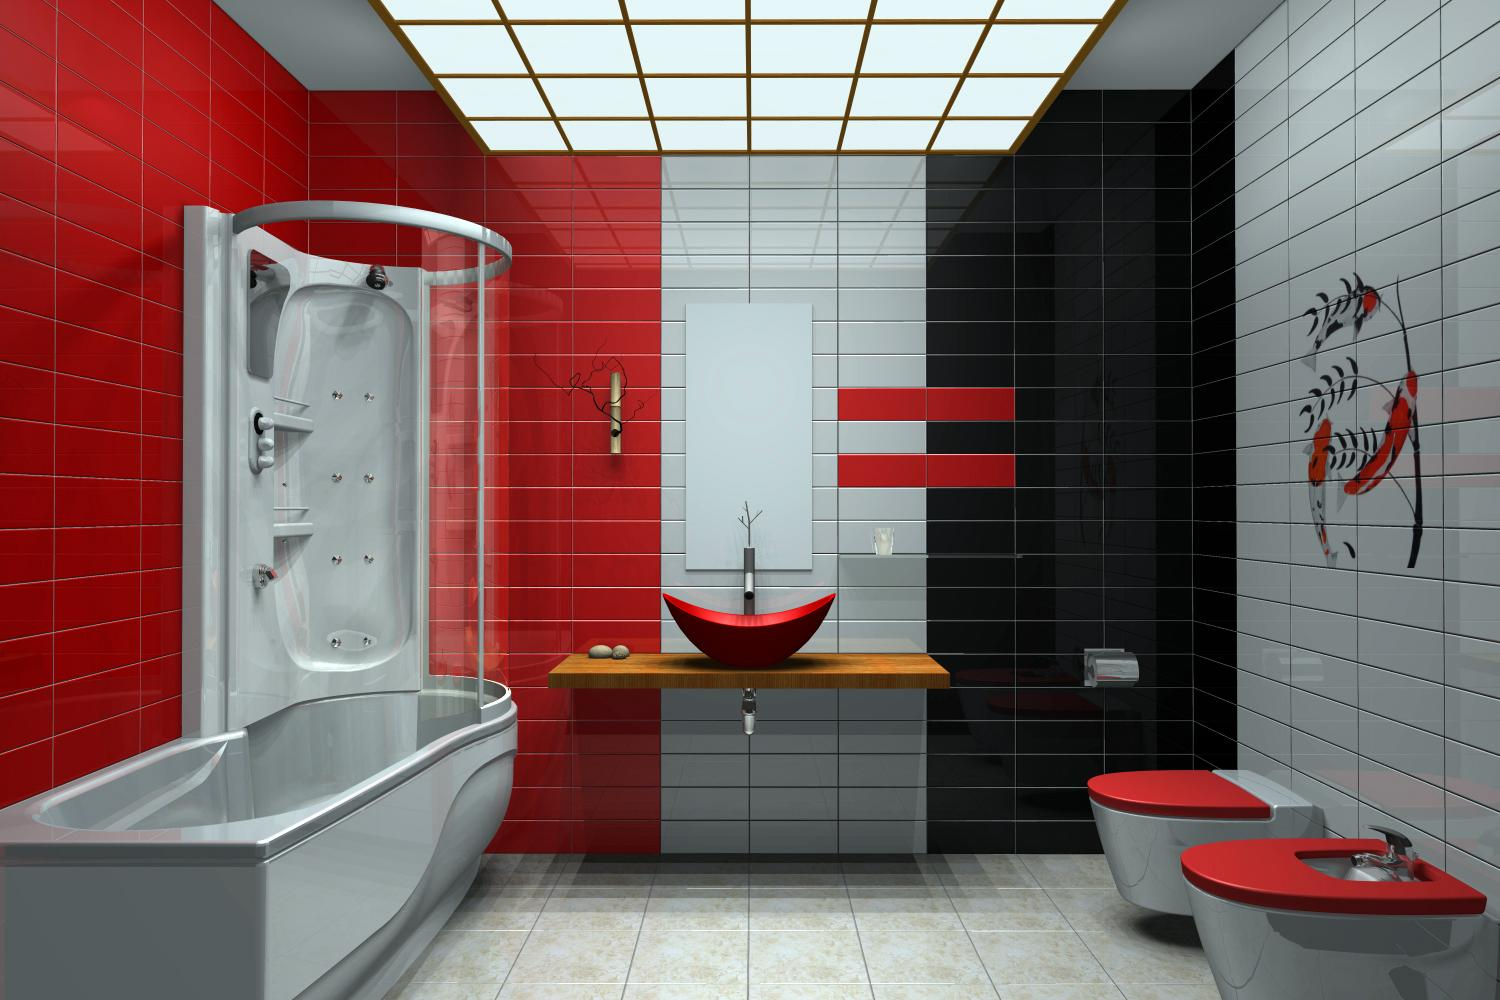 Remarkable Red and Black Bathroom Ideas 1500 x 1000 · 164 kB · jpeg